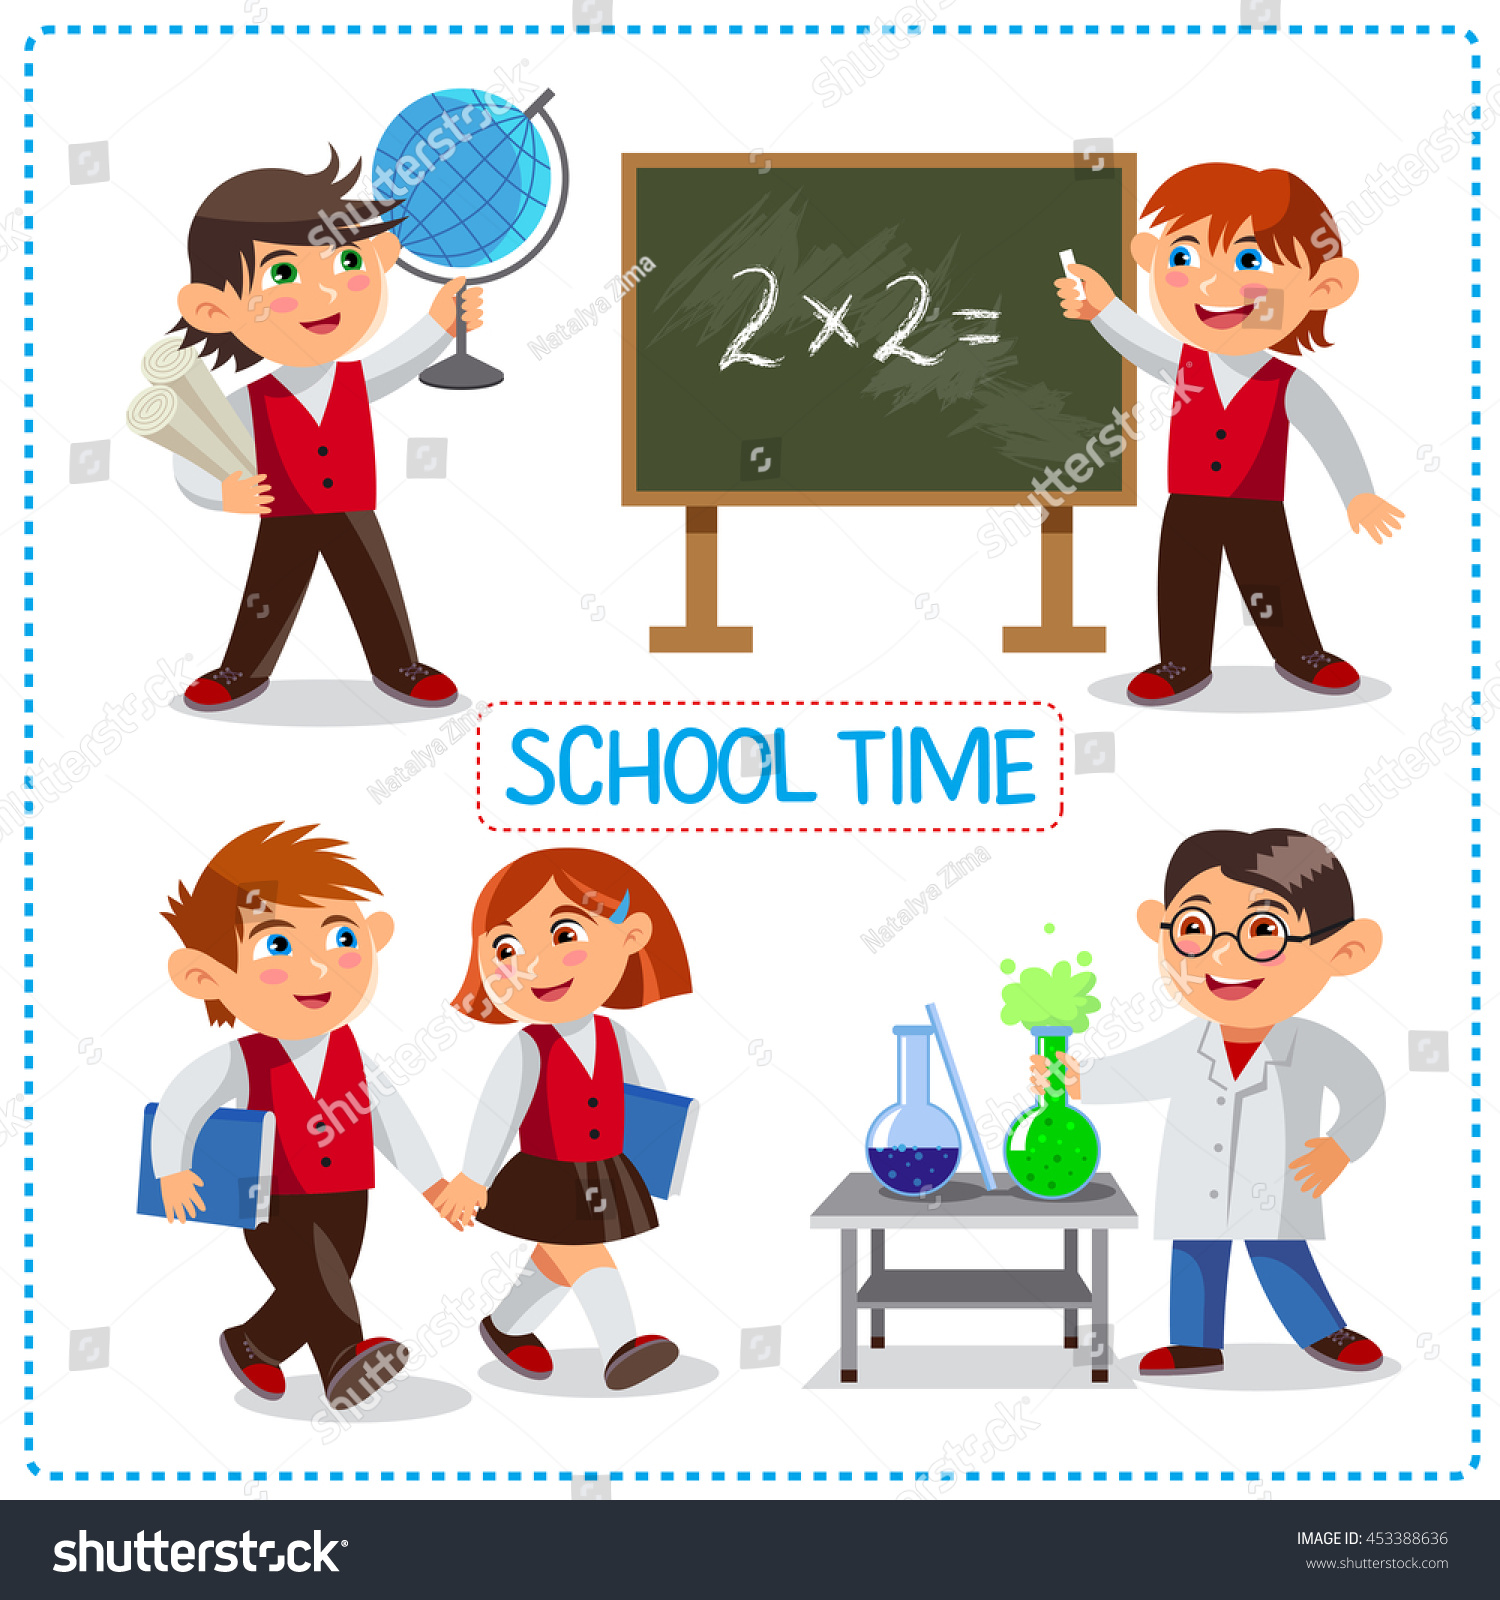 Deciding stock illustrations royalty free gograph - Cute Schoolchild At A Lesson Of Geography